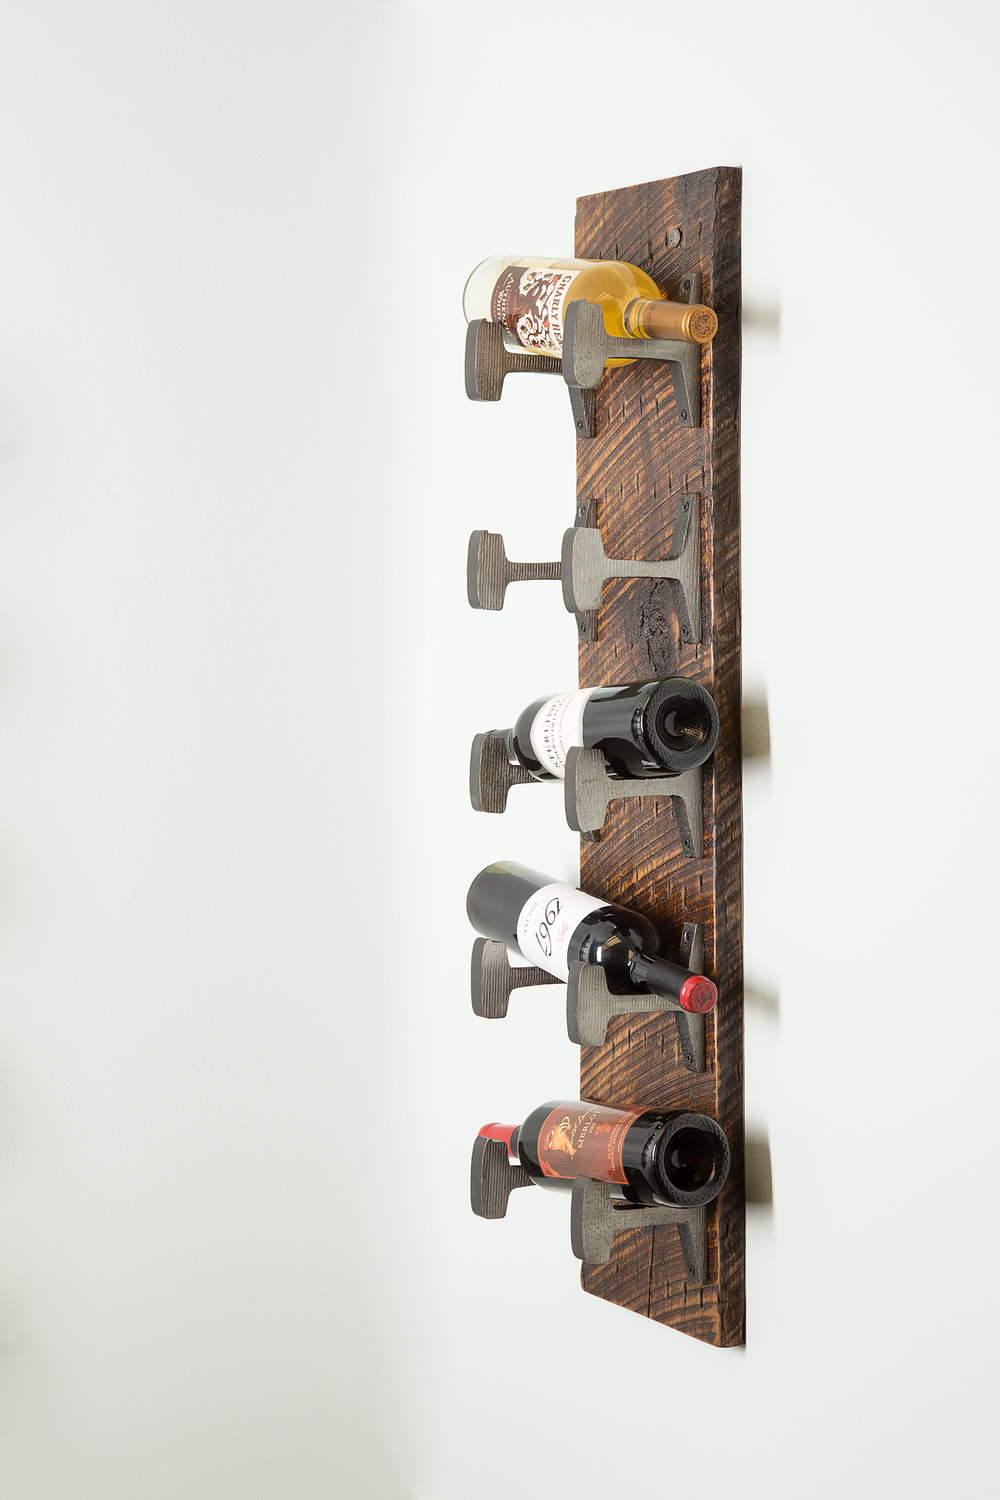 Decor and art custom furniture design nashville artisan designed wall mount wine rack 41 1g amipublicfo Gallery